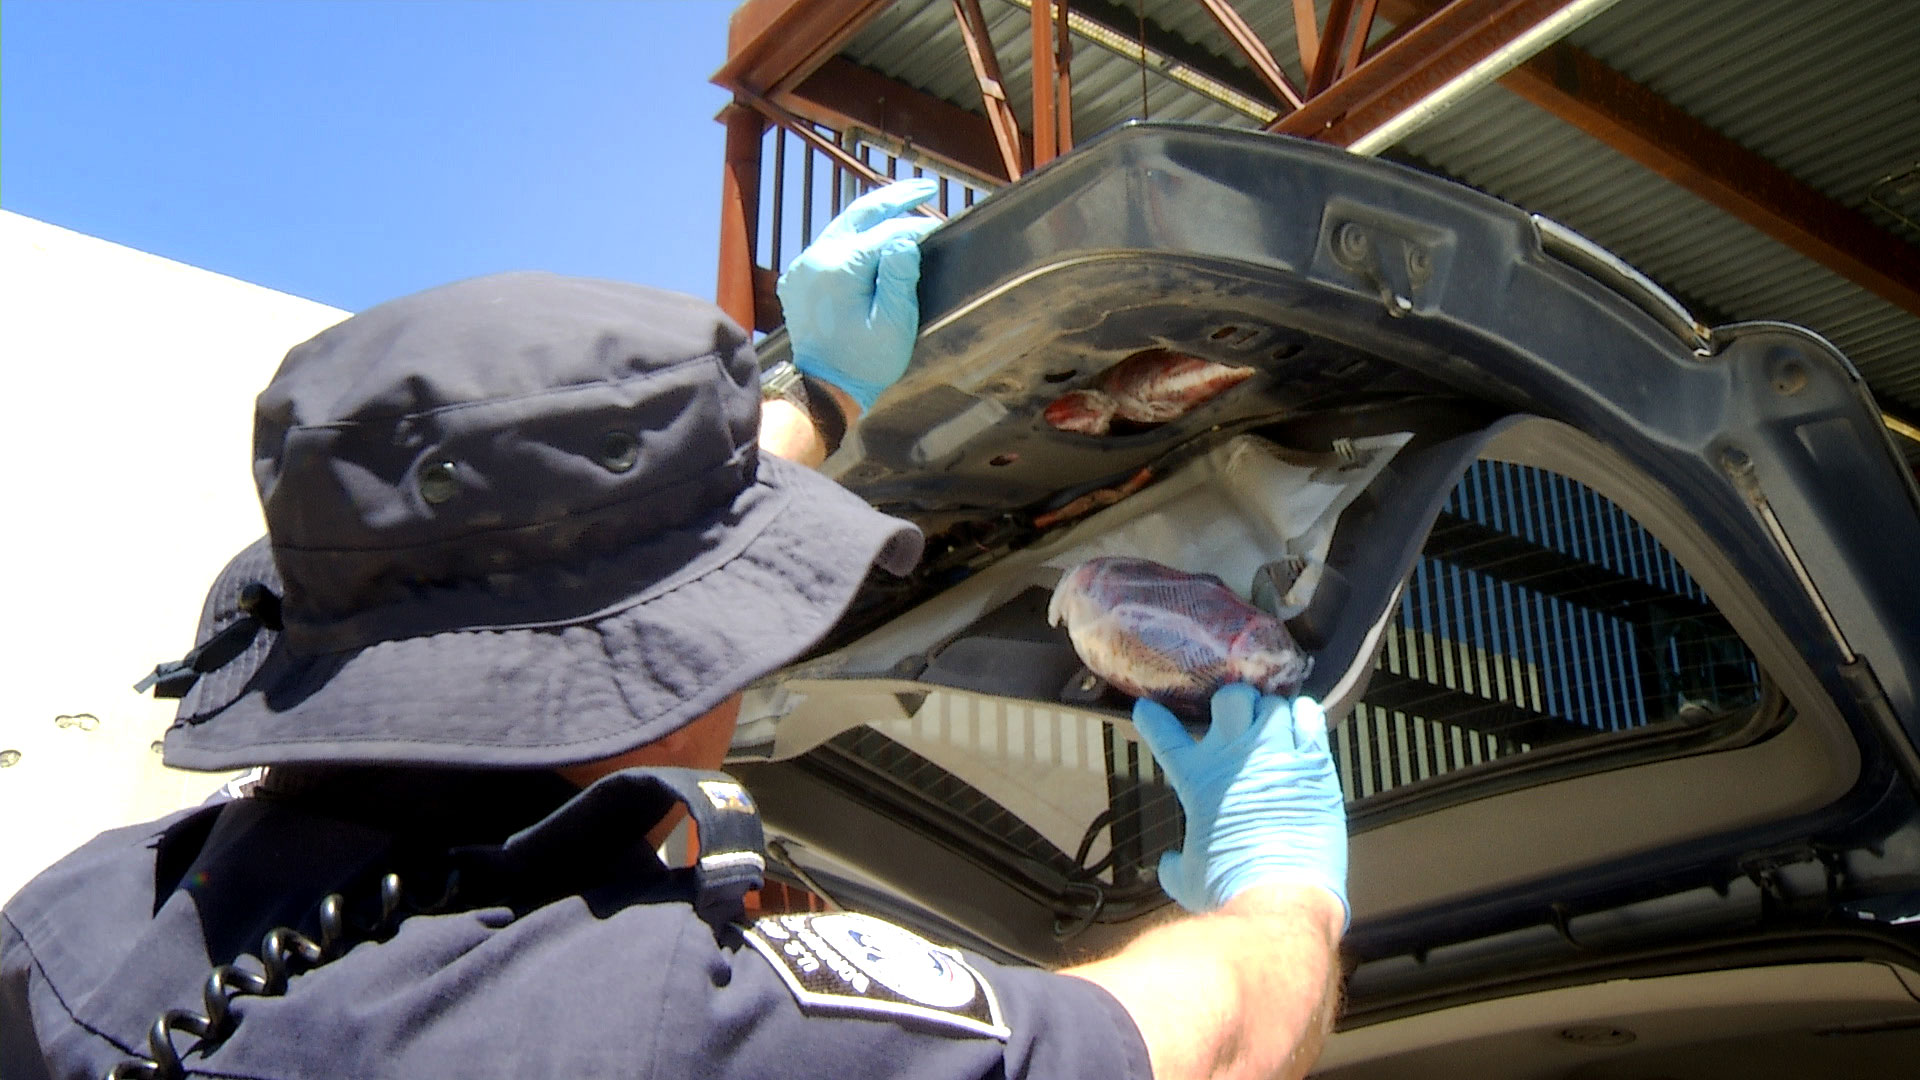 A customs officer removes packages of drugs hidden inside the rear door of an SUV at the Mariposa Port of Entry in Nogales. May 2019.